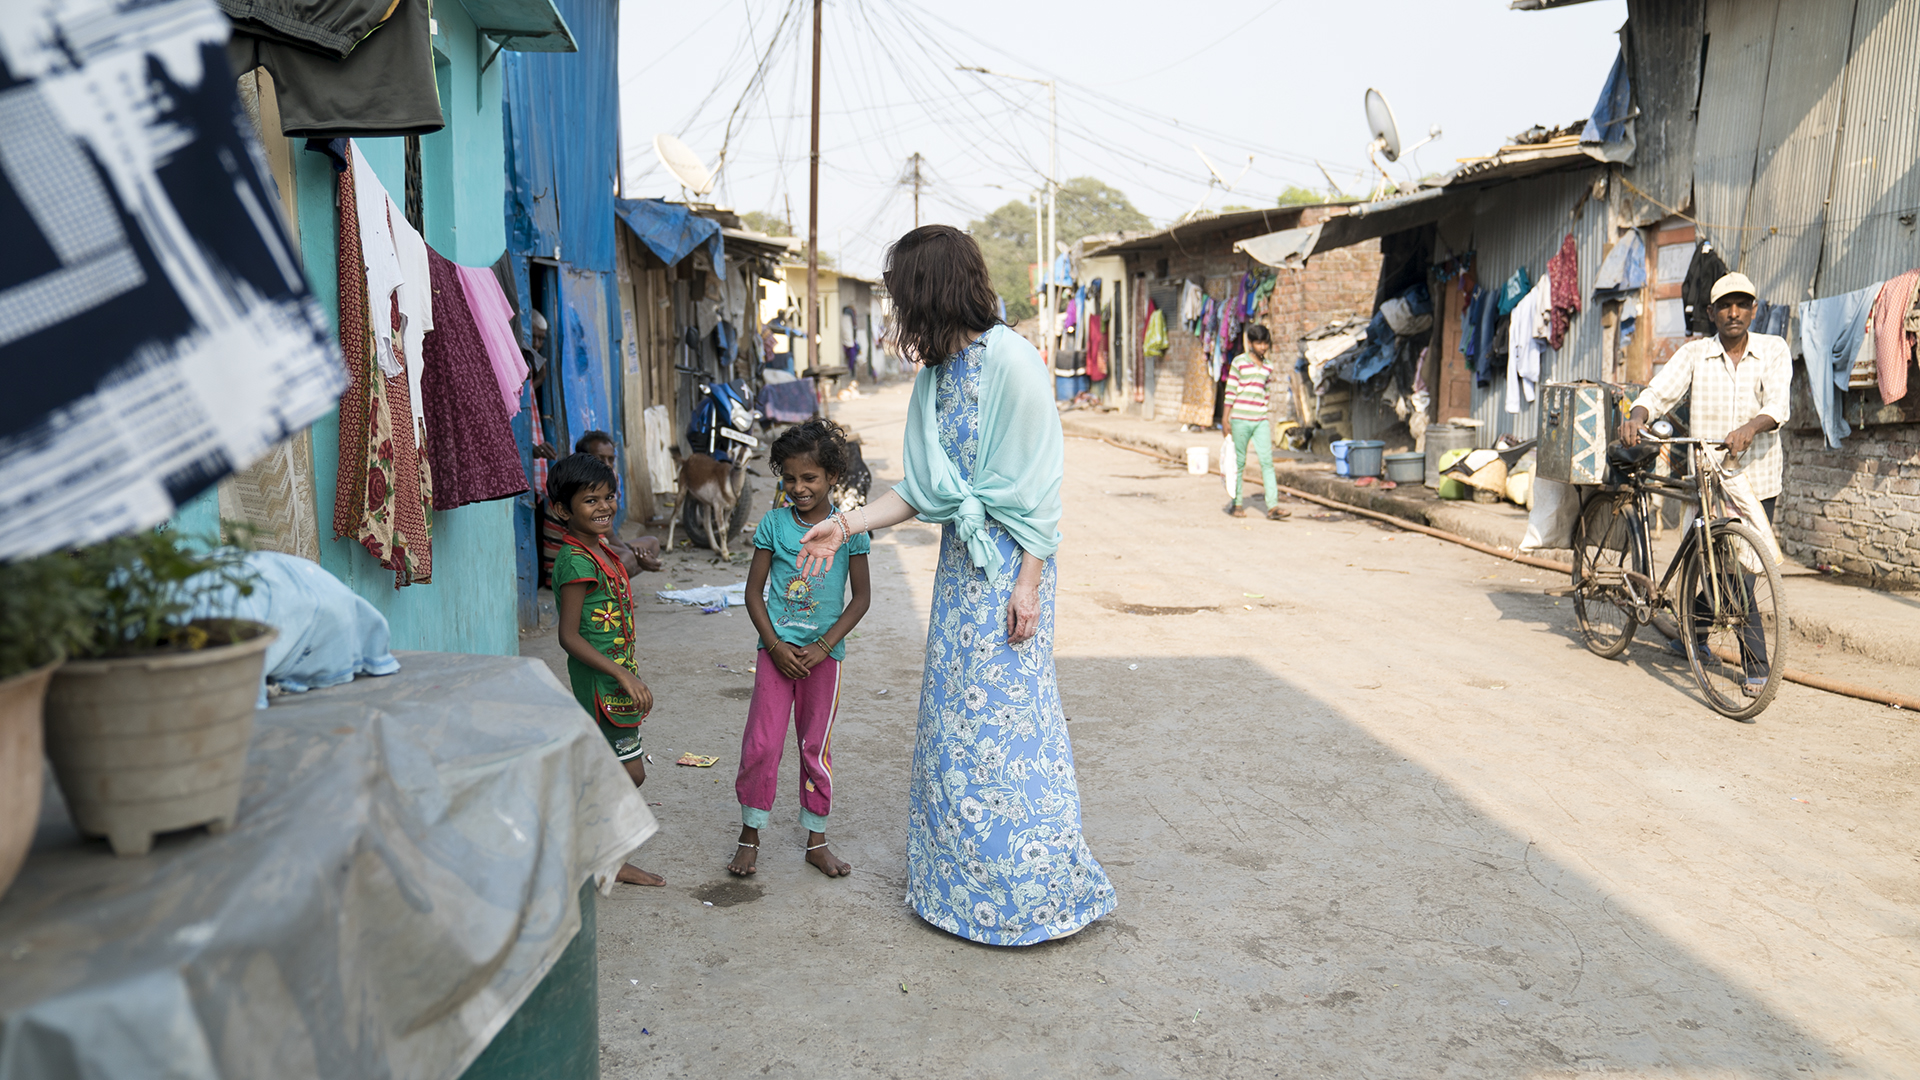 Lisa in Kalwa, one of Vision Rescue's community centers